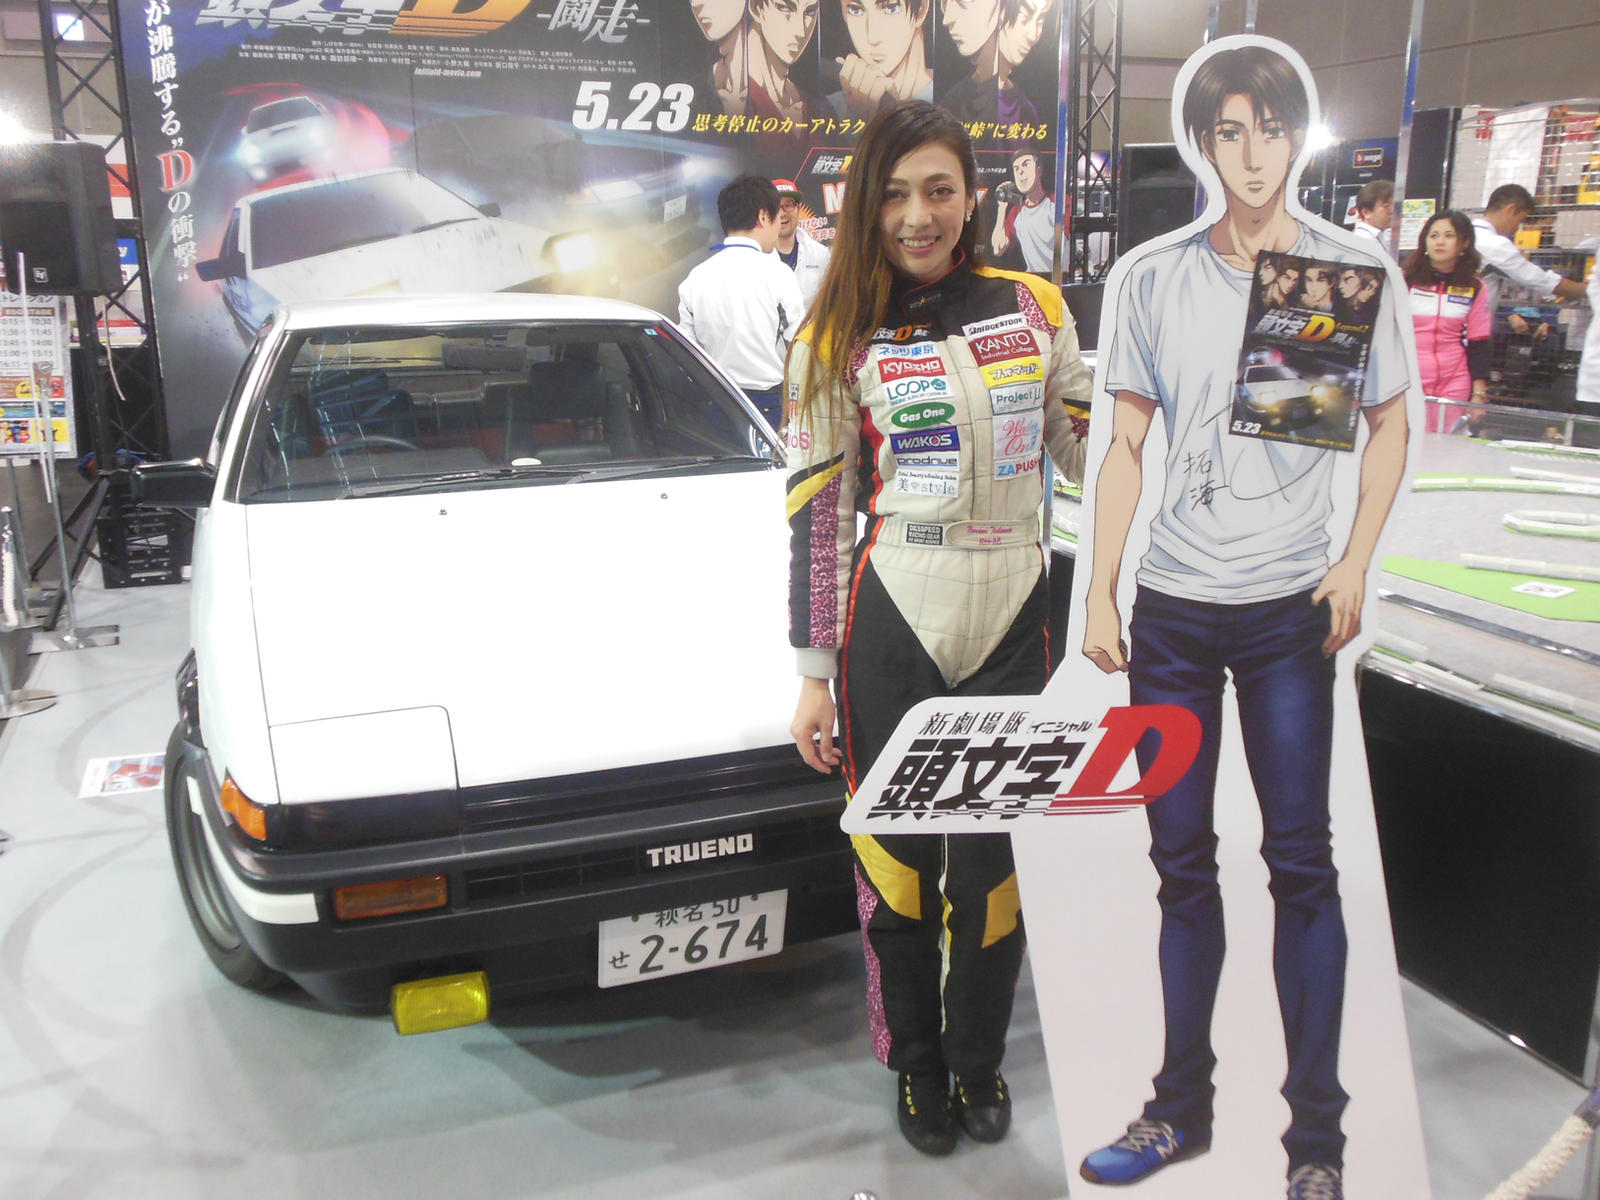 new initial d legend 2 the racer promotion by